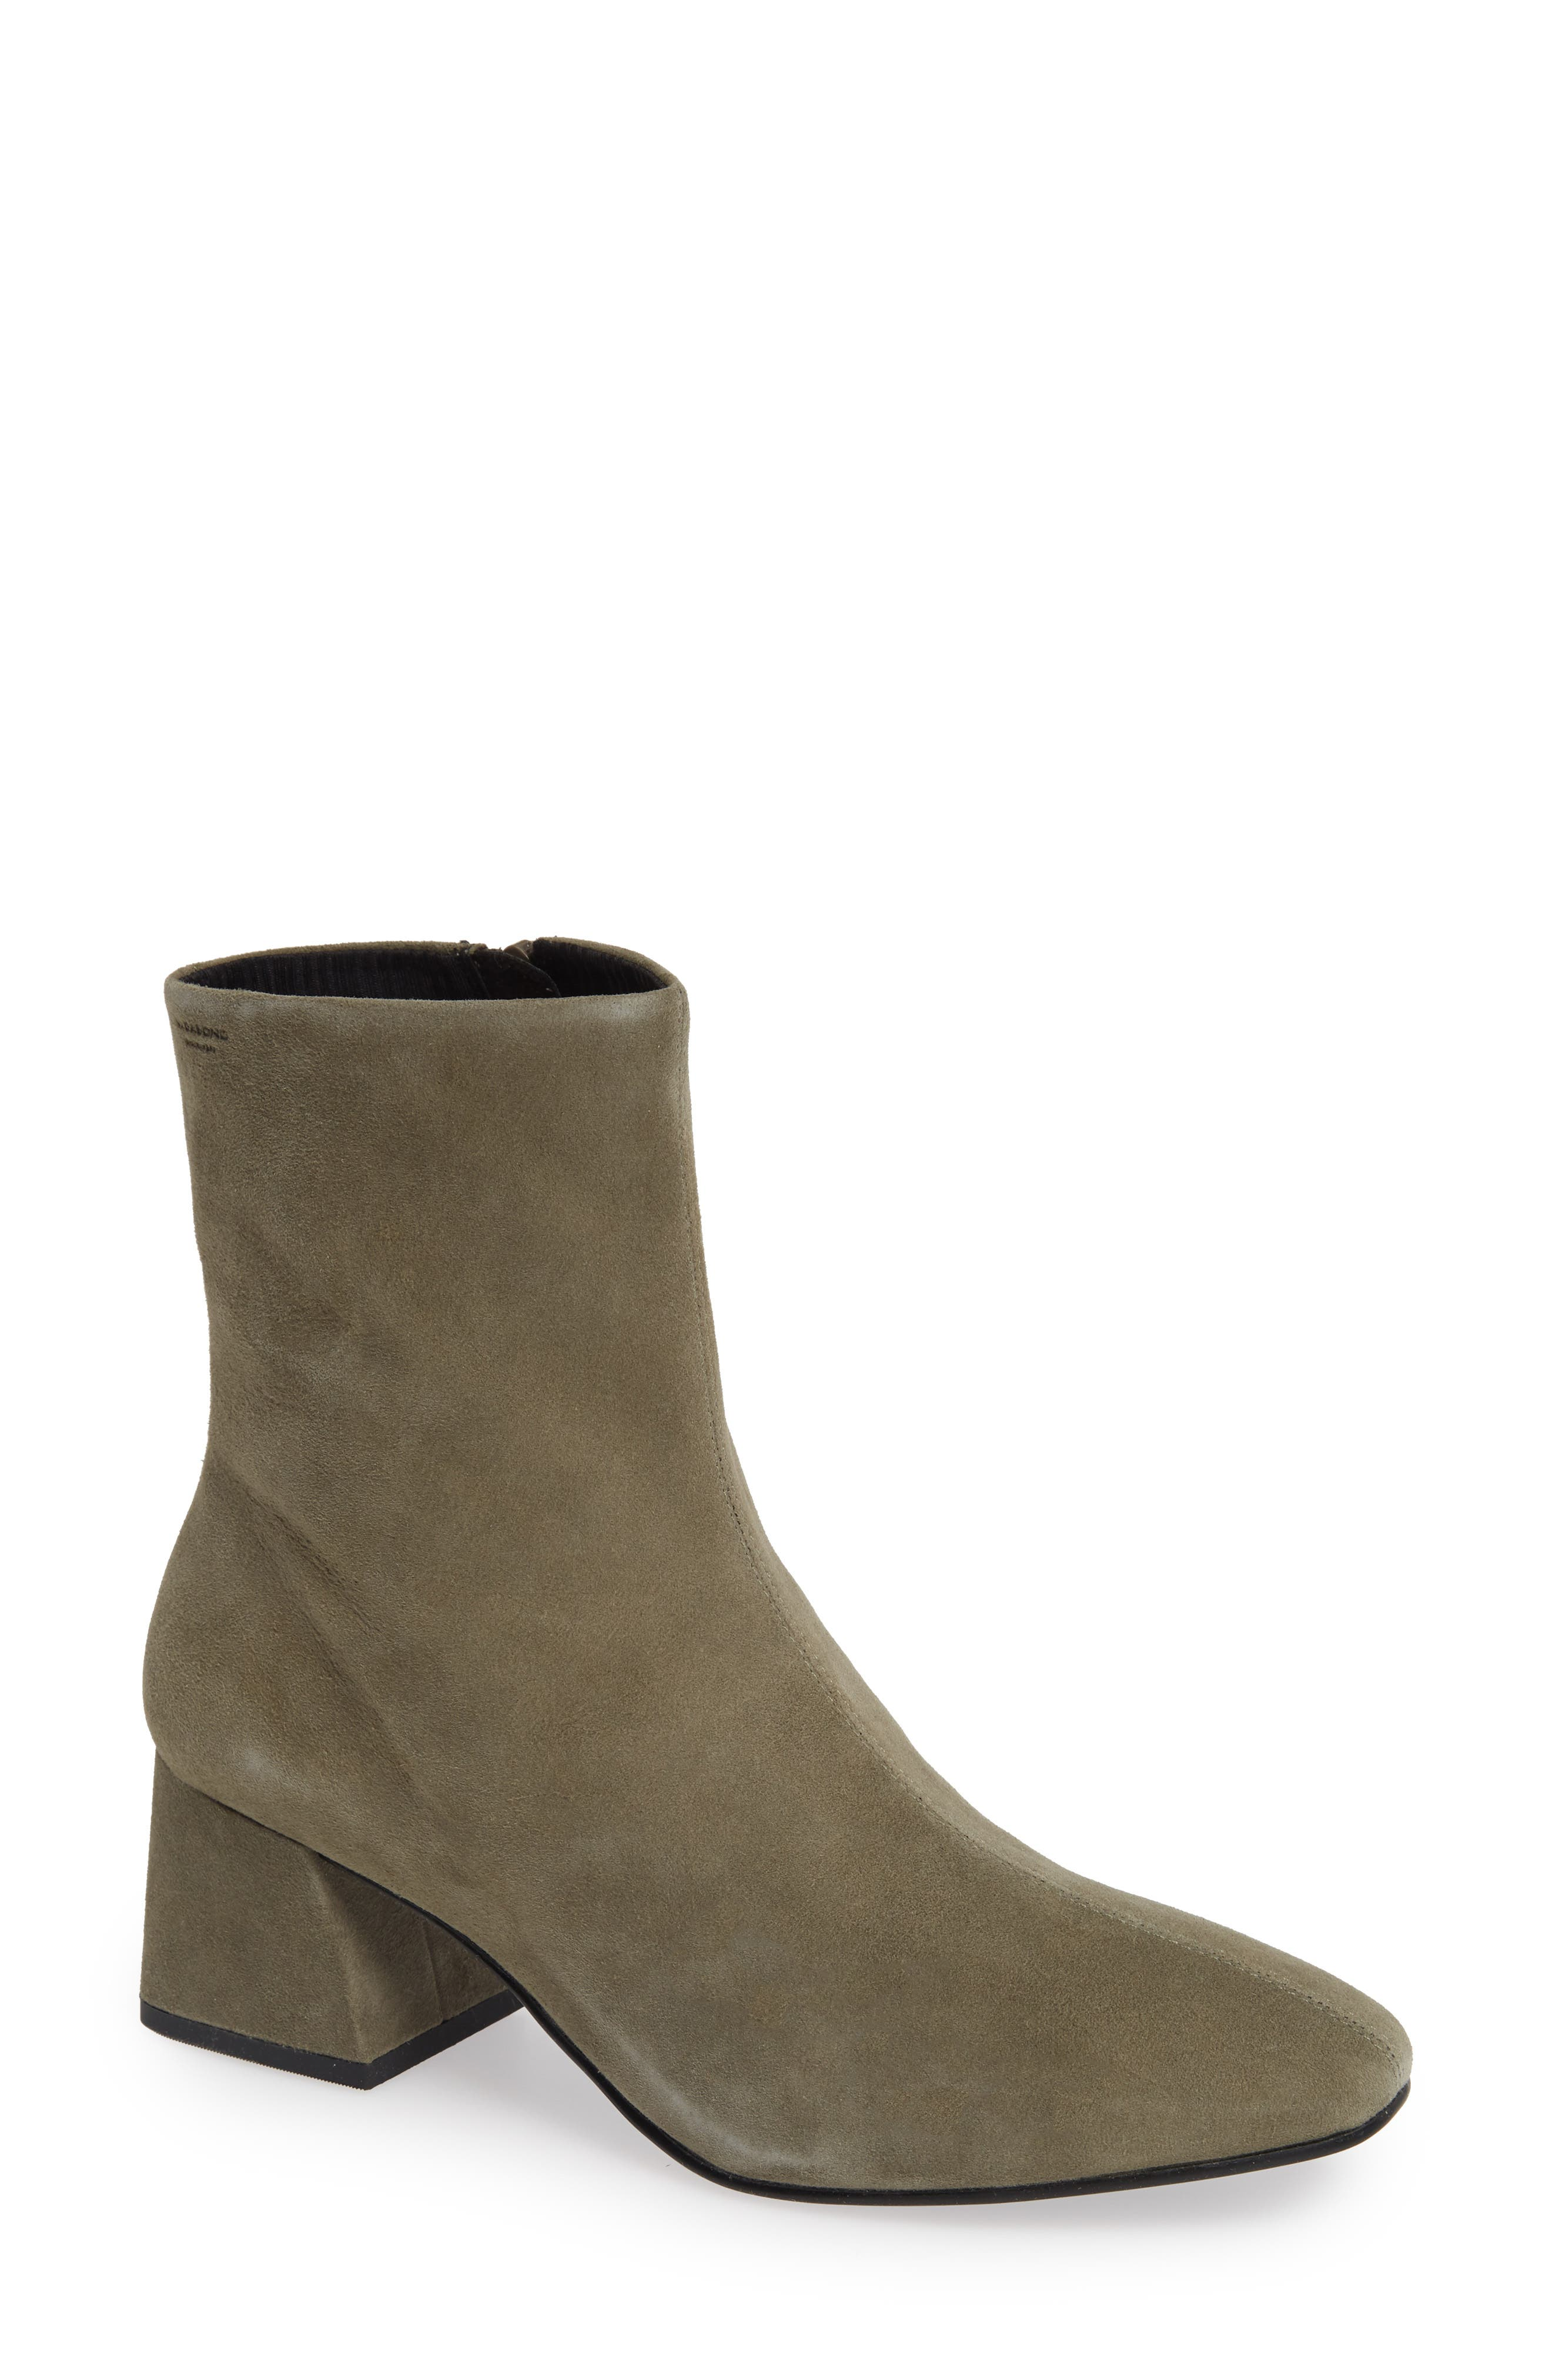 Shoemakers Alice Bootie in Light Olive Suede